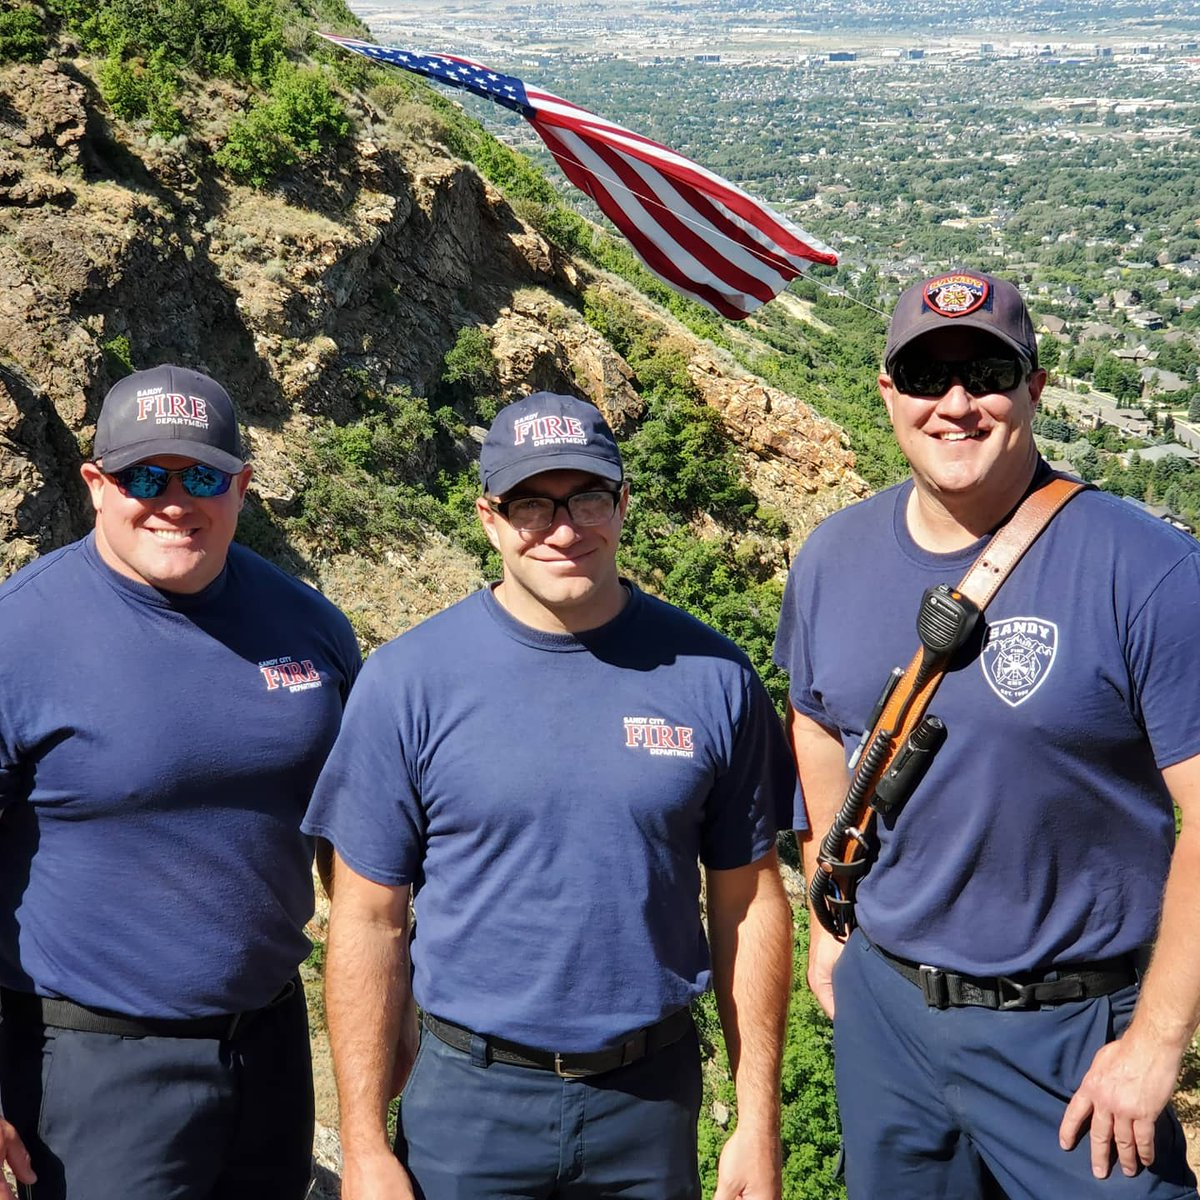 The Crew from station 33 had the honor of assisting with the flag this morning. Harold Higgins and his crew do an amazing job every year. Thank you for your patriotism, and for allowing us to tag along today.   #sandyfire #sandycityfire #sfd #sandycity #heartofthewasatch https://t.co/Ic5p3ryHfQ